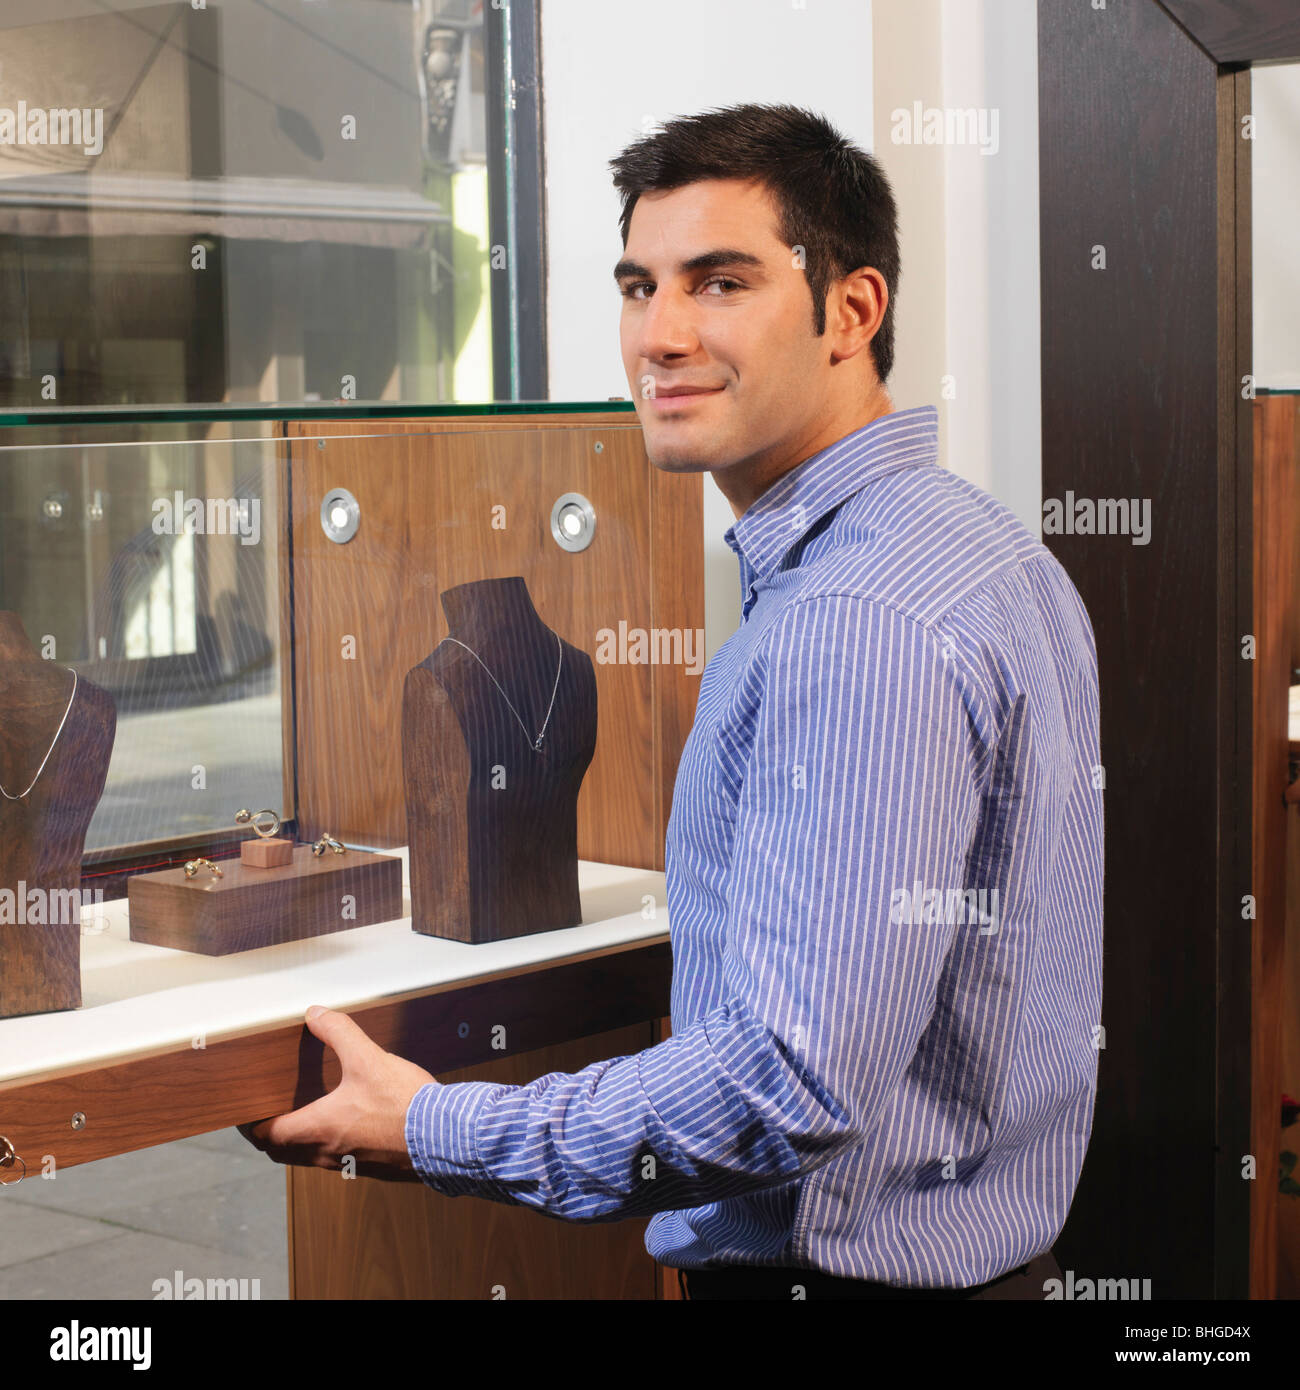 man opening/closing display cabinet - Stock Image